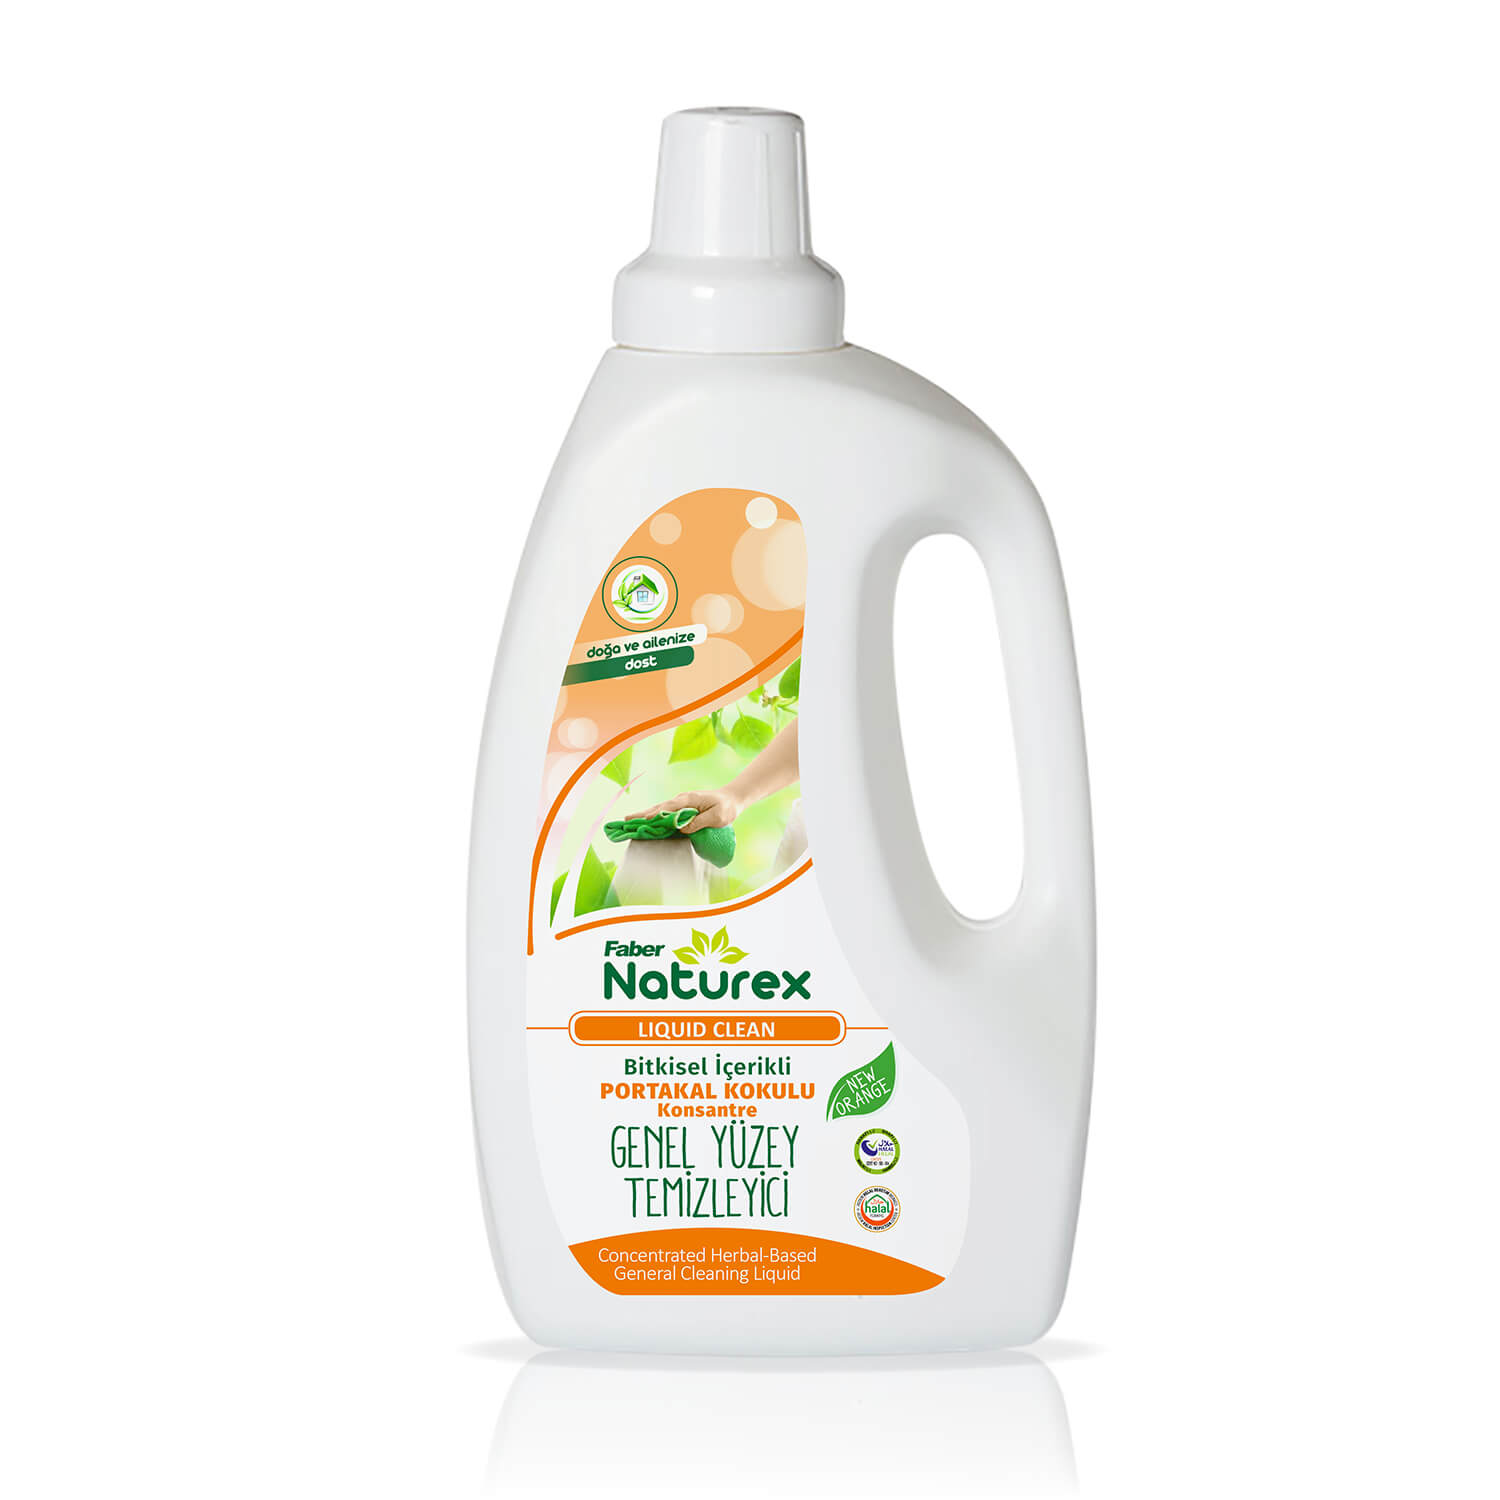 Faber Naturex® Liquid Clean